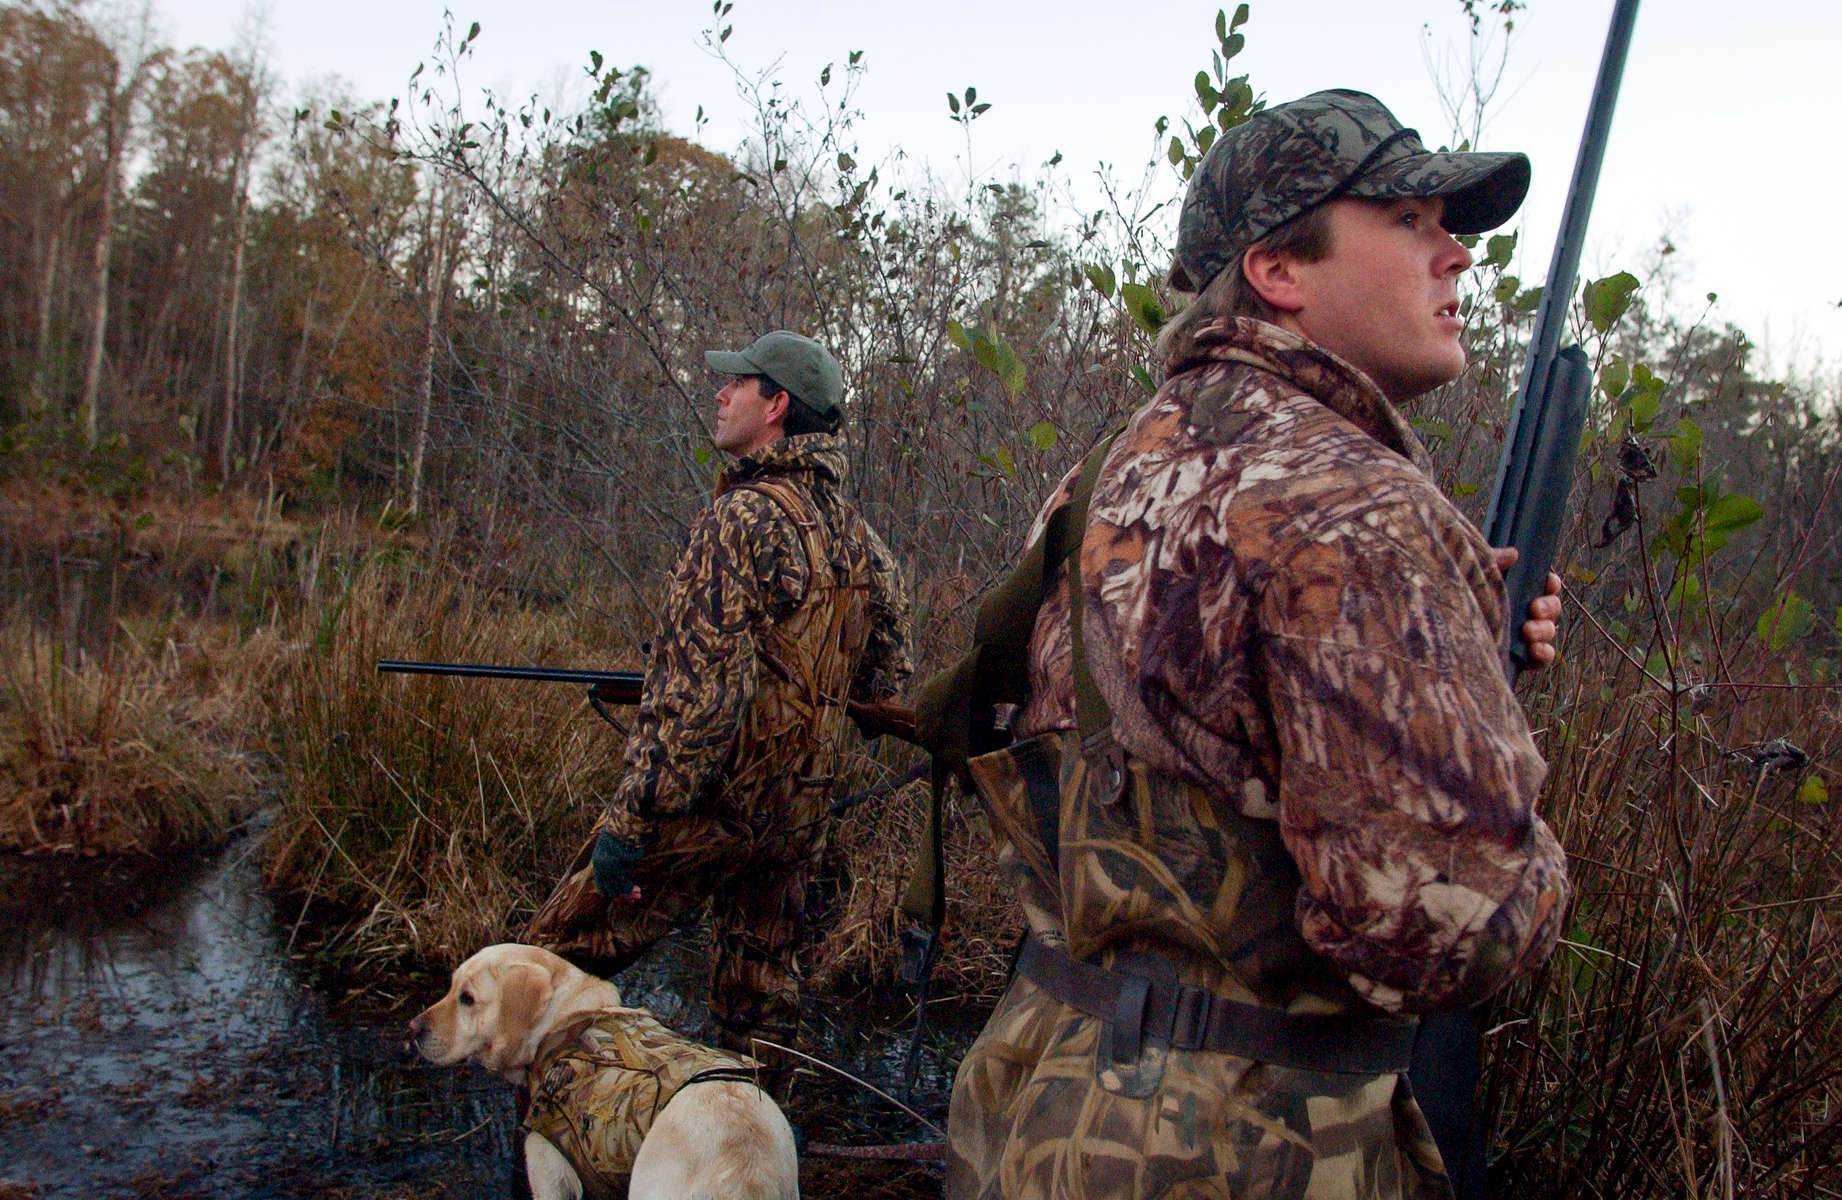 DUCKHUNT6.SP.110403.SAS --  R. J. Blondeau, right, his hunting partner, Glenn Veasey, and Veasey\'s English labrador retriever, Josie, watch the sky for ducks to arrive at their hunting spot in Franklin County. STAFF/SHER STONEMAN